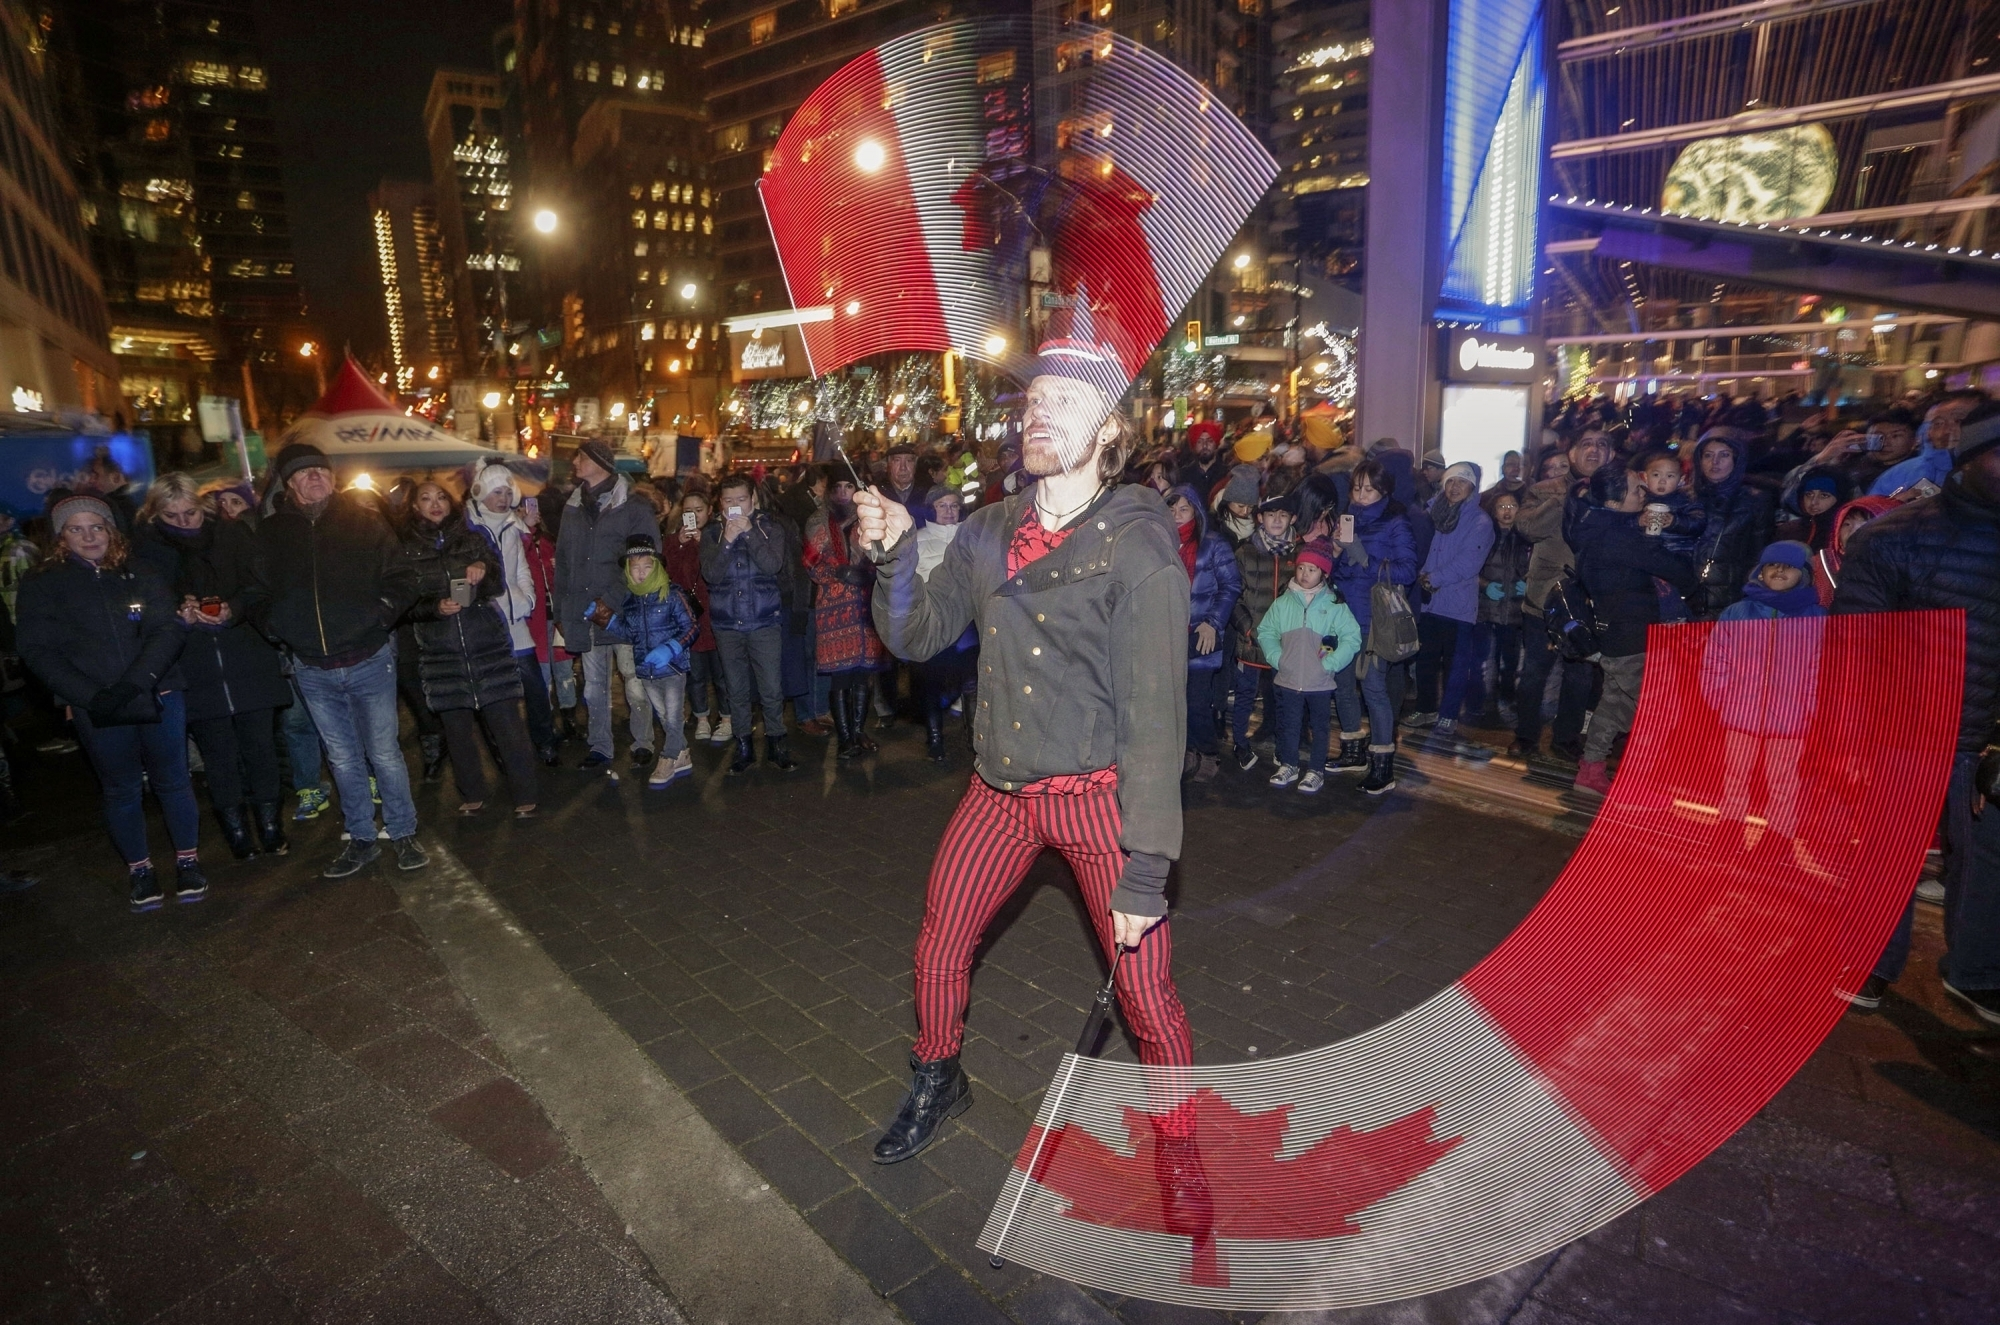 A performer plays LED sticks during the New Year celebrations at Canada Place in Vancouver, Canada. (Image Credit: Xinhua/IANS)